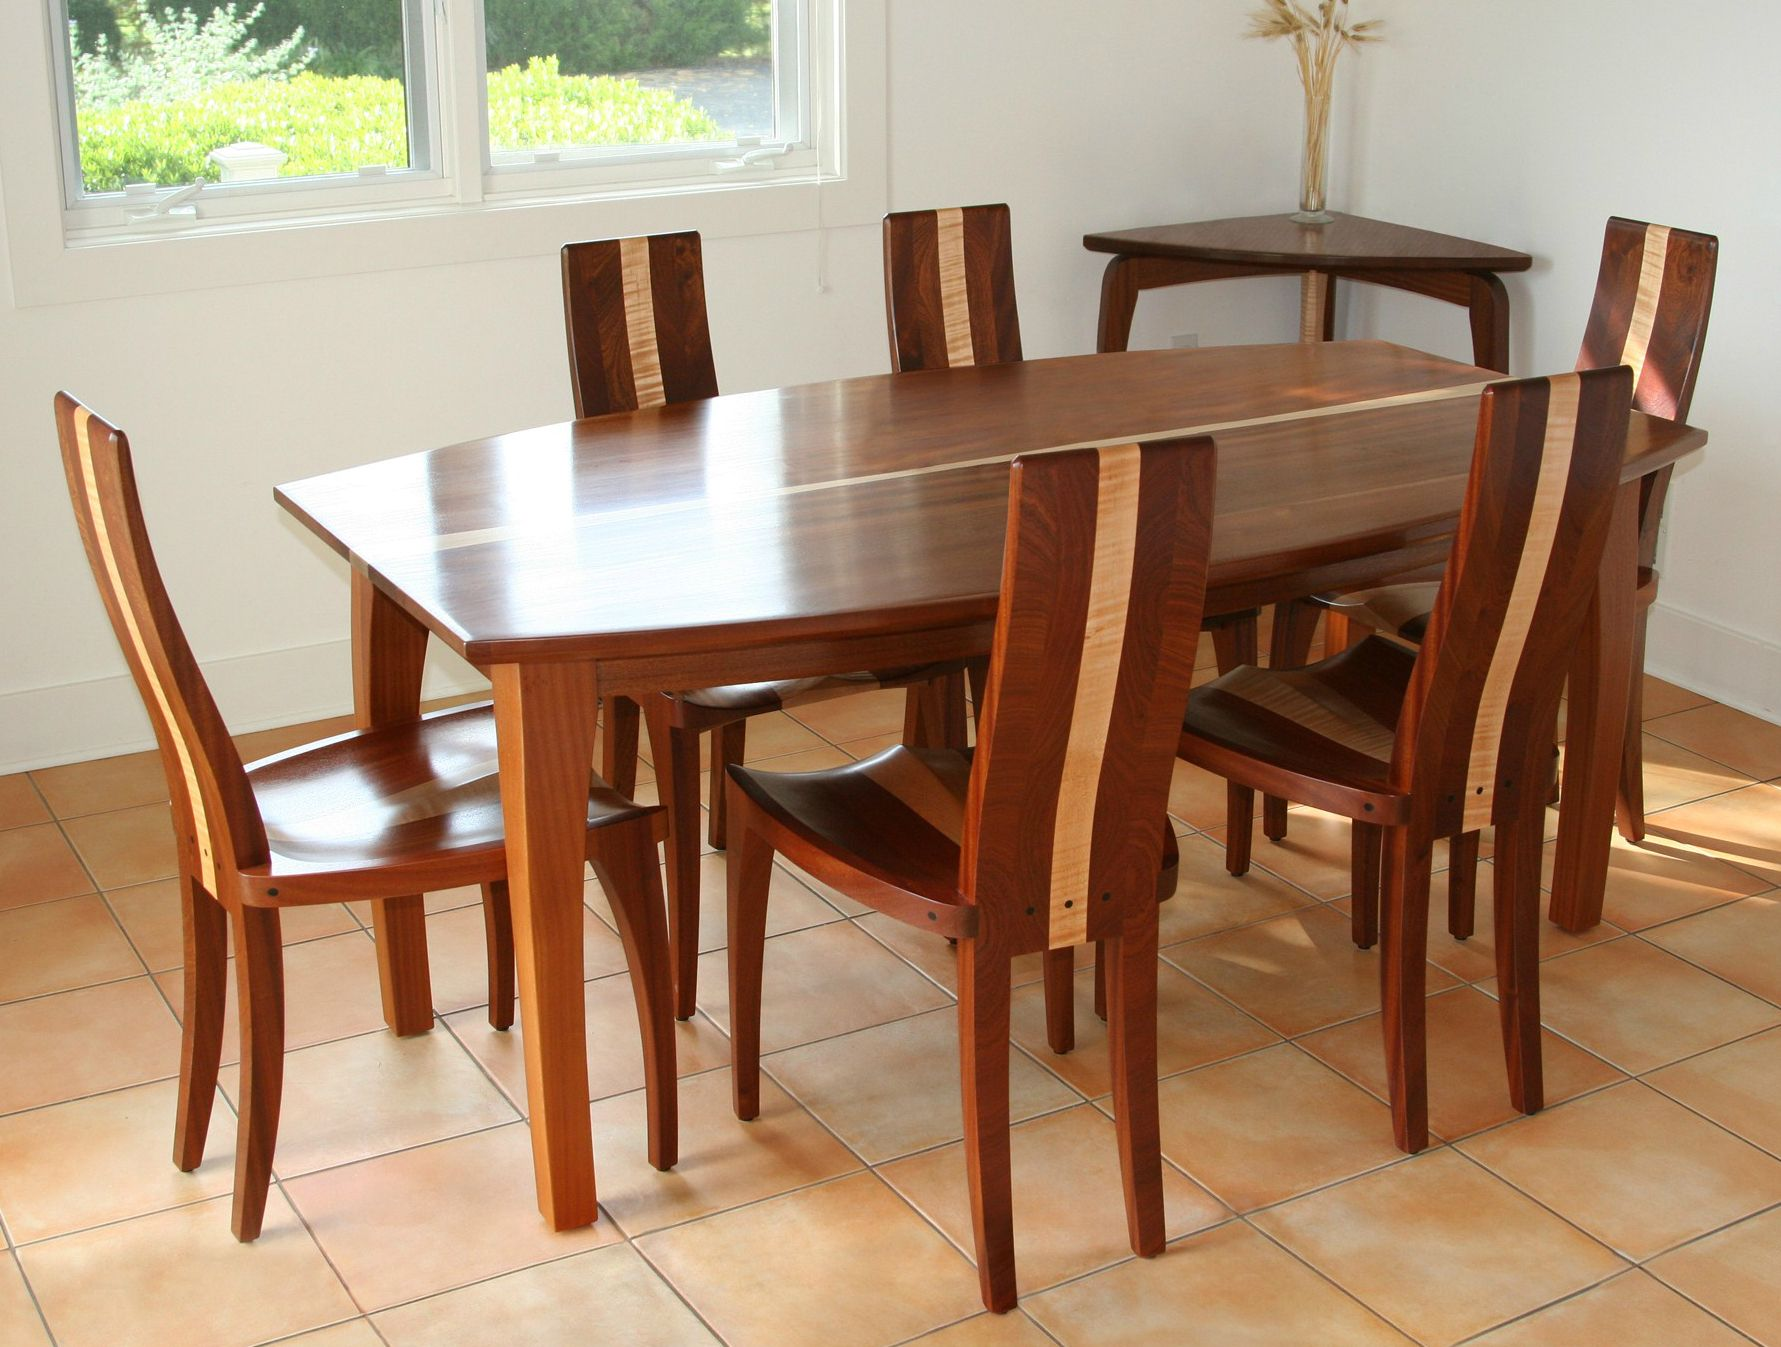 Buy a Hand Made Modern Wood Dining Table, Solid Mahogany ...